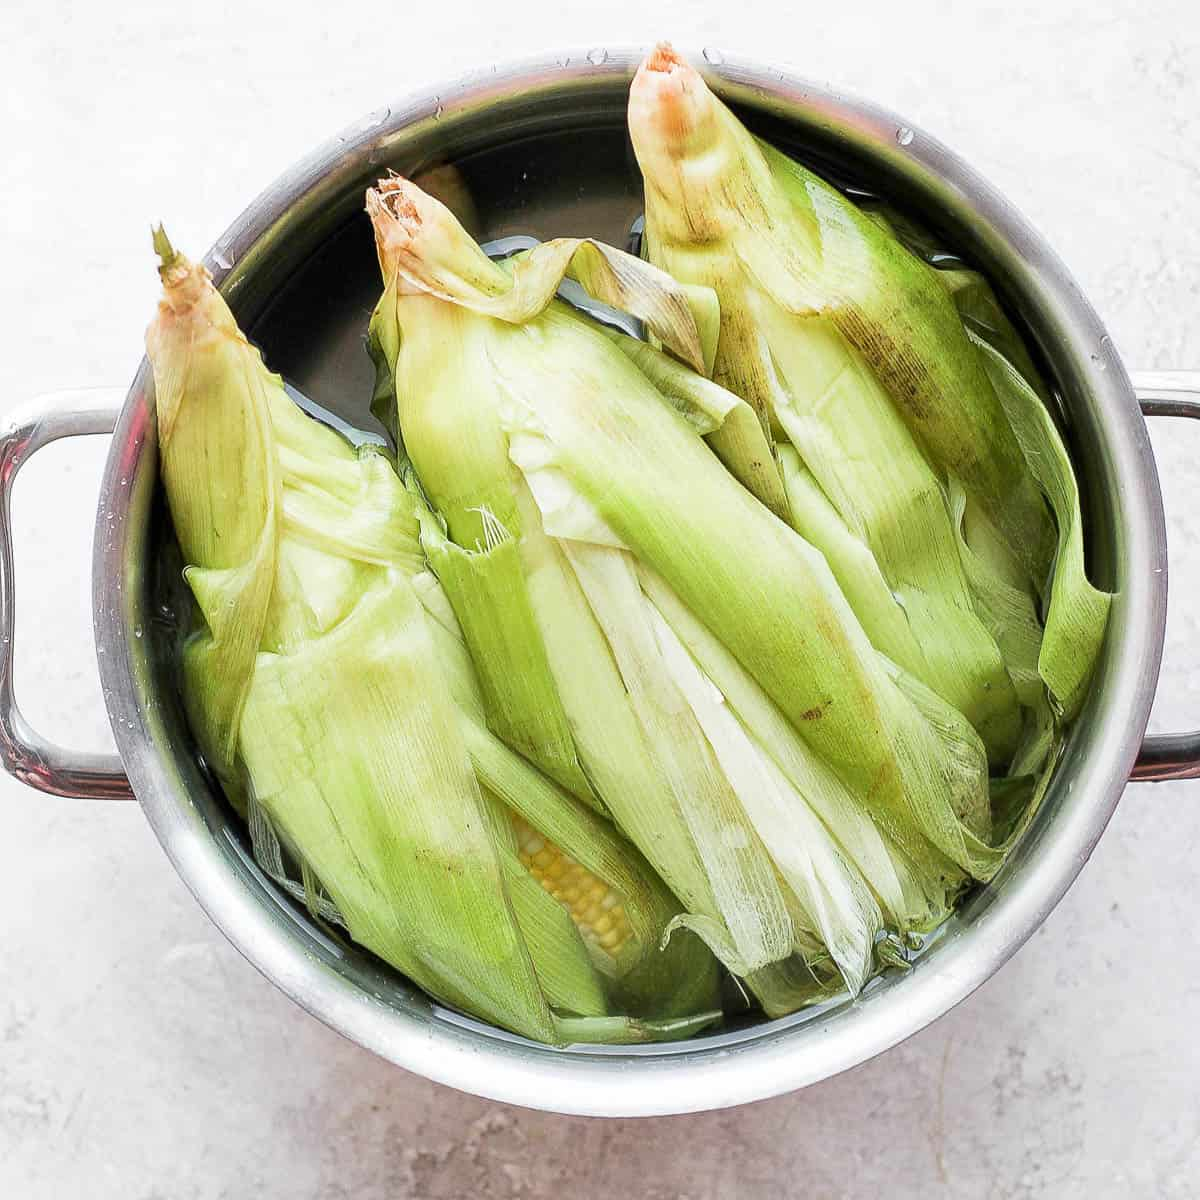 Corn with husks getting soaked in pot of water